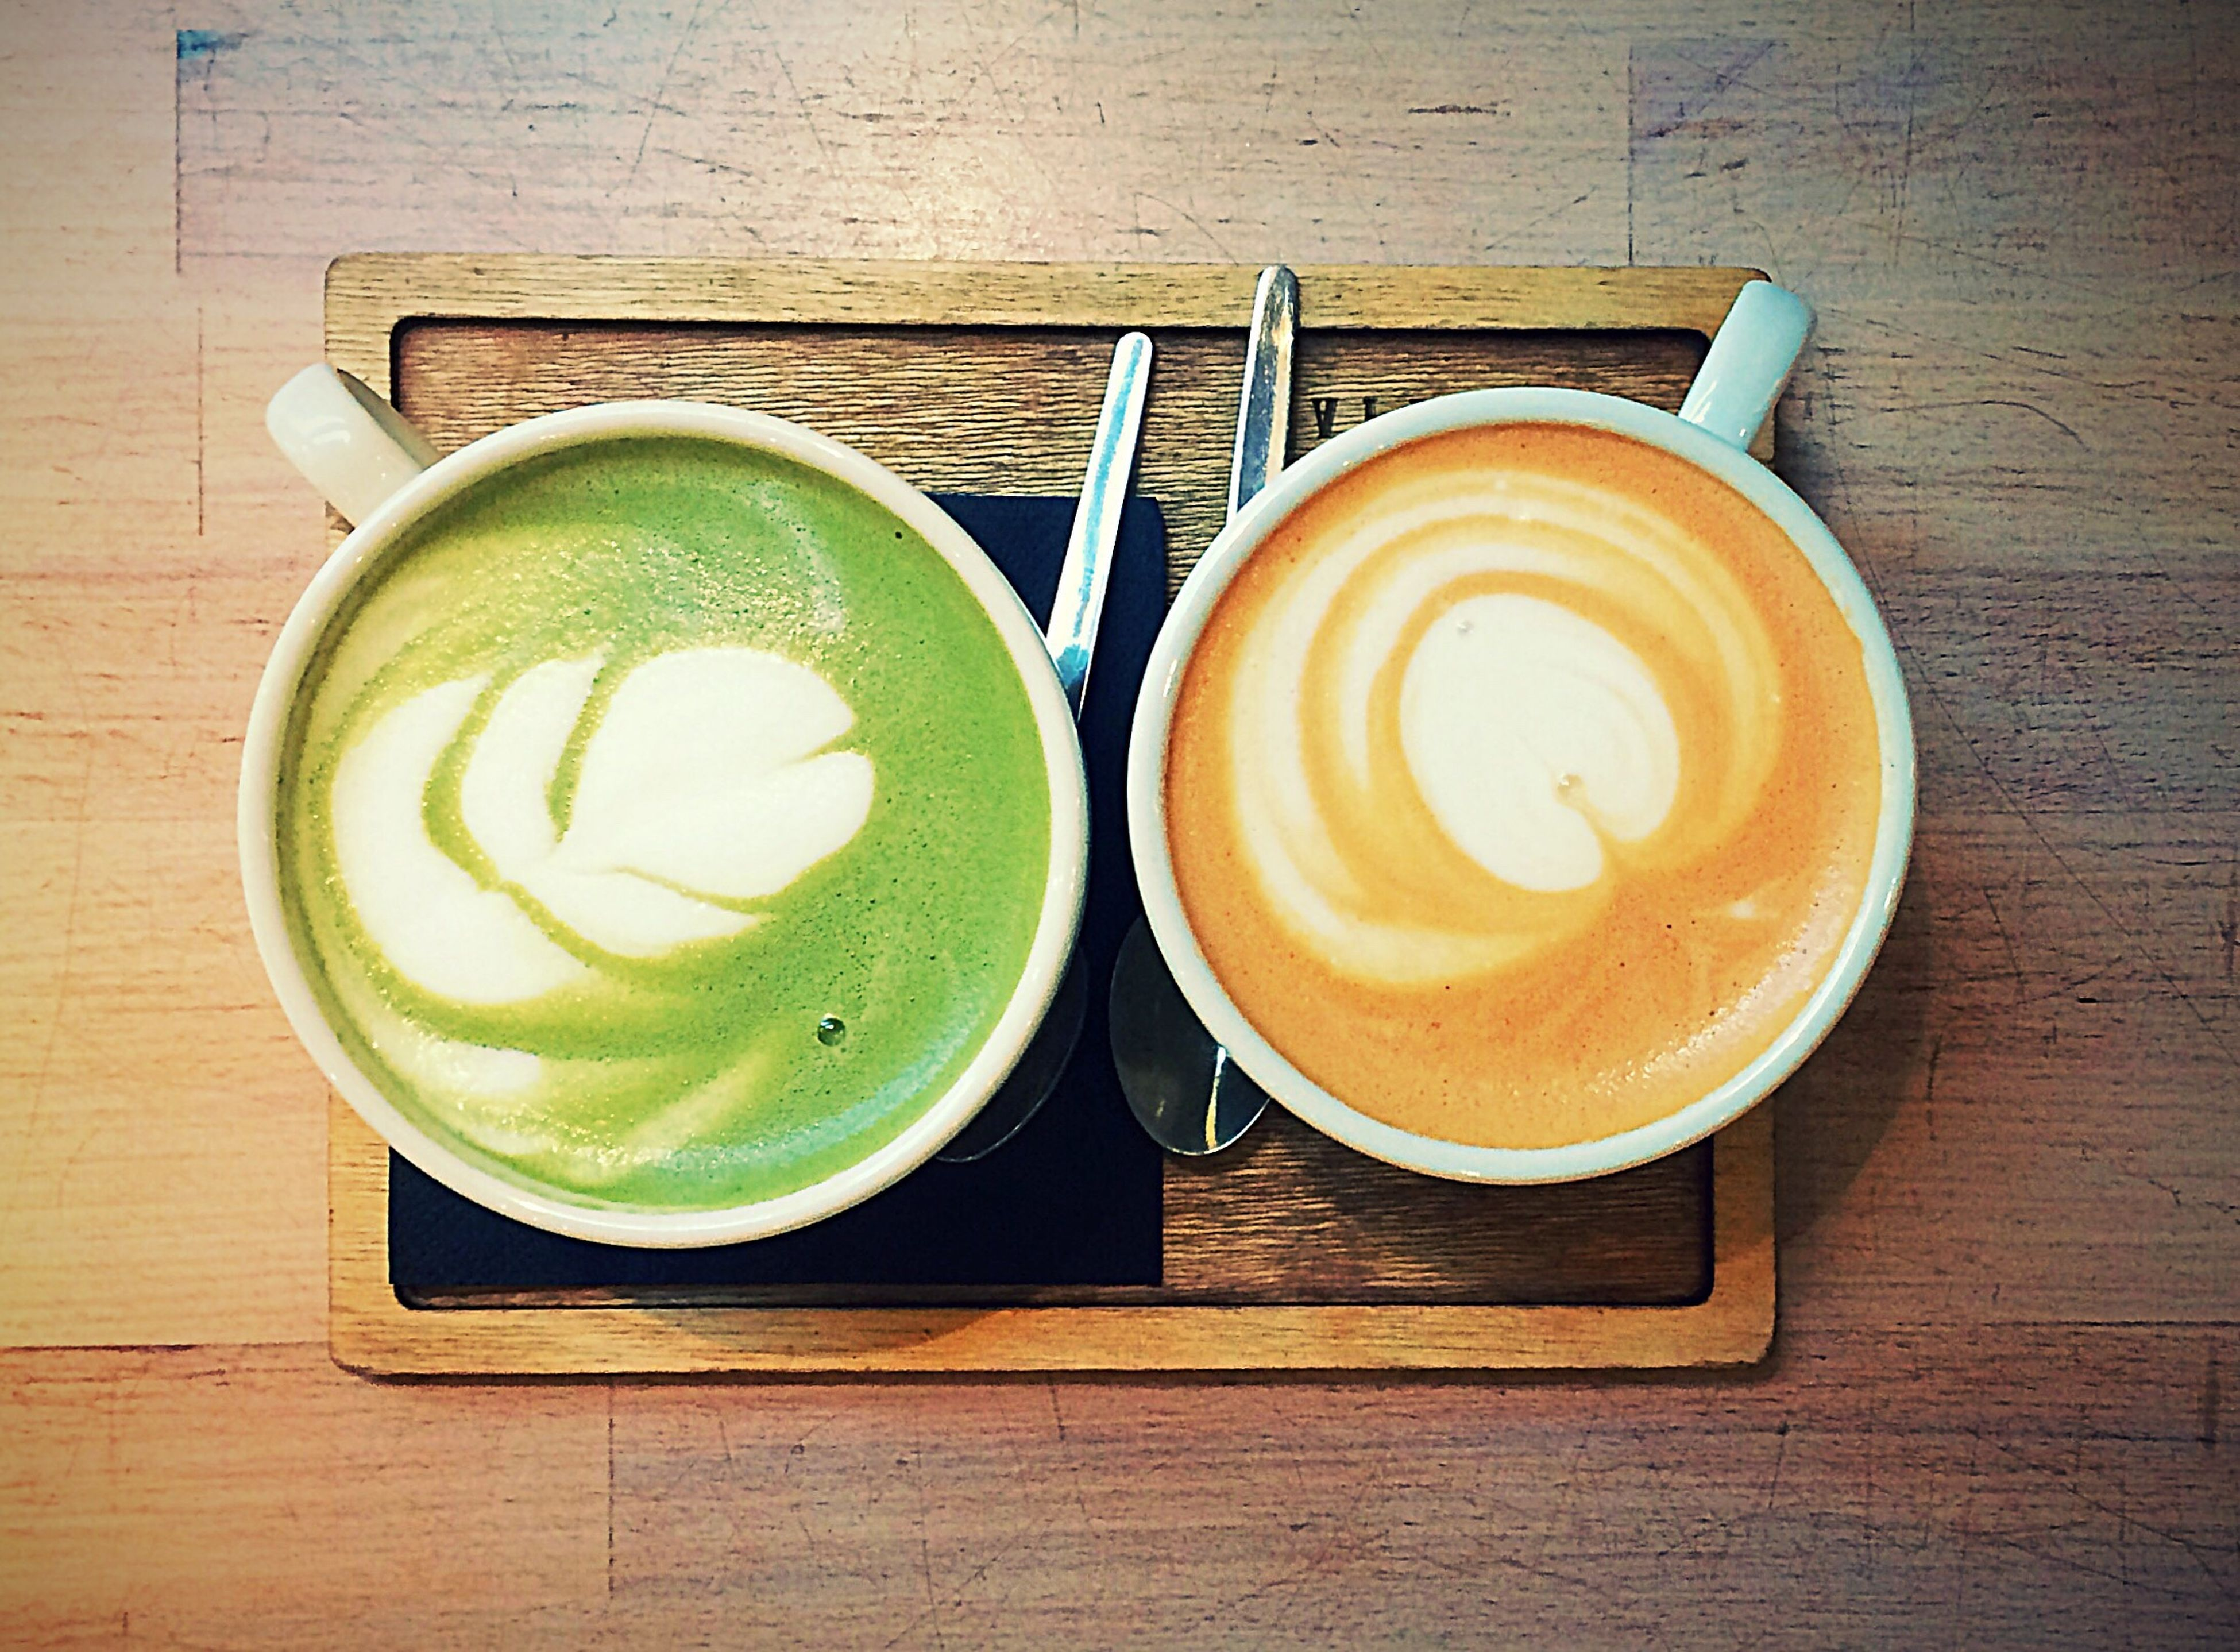 drink, cappuccino, coffee cup, coffee - drink, food and drink, frothy drink, refreshment, table, green color, freshness, directly above, espresso, indoors, froth art, latte, no people, drinking glass, healthy eating, close-up, day